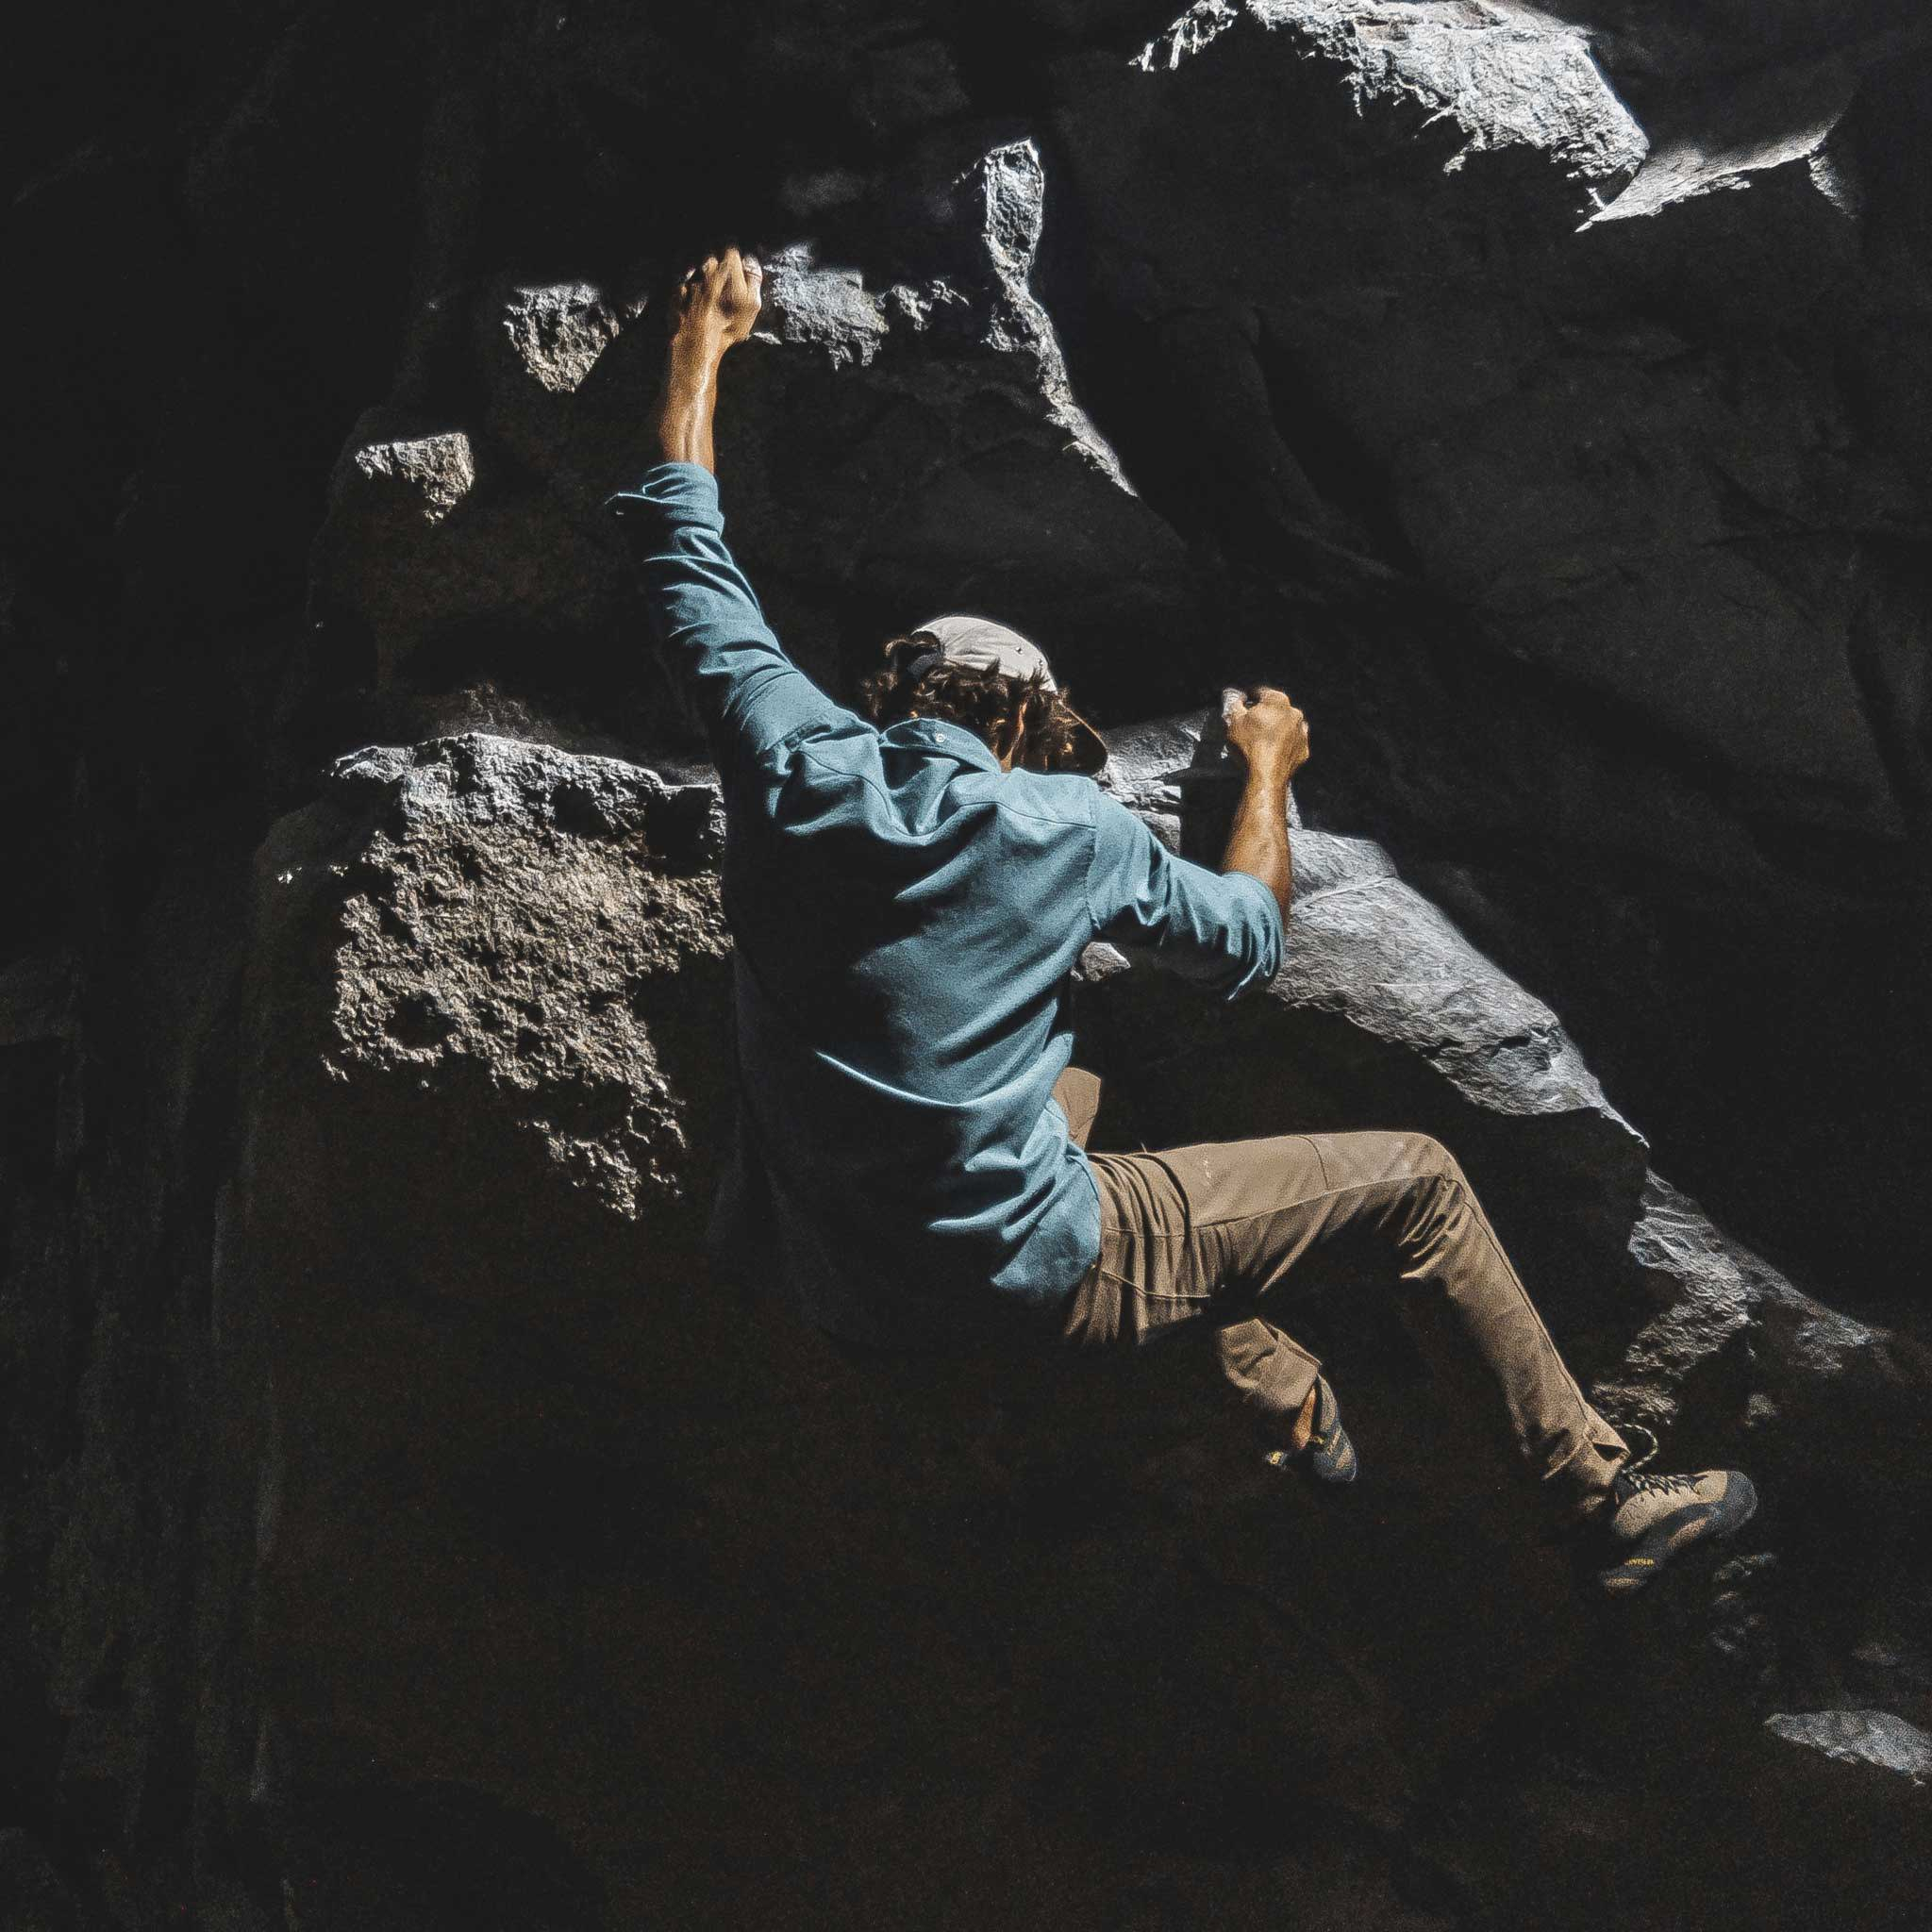 Man bouldering while wearing Collins Flannel Shirt